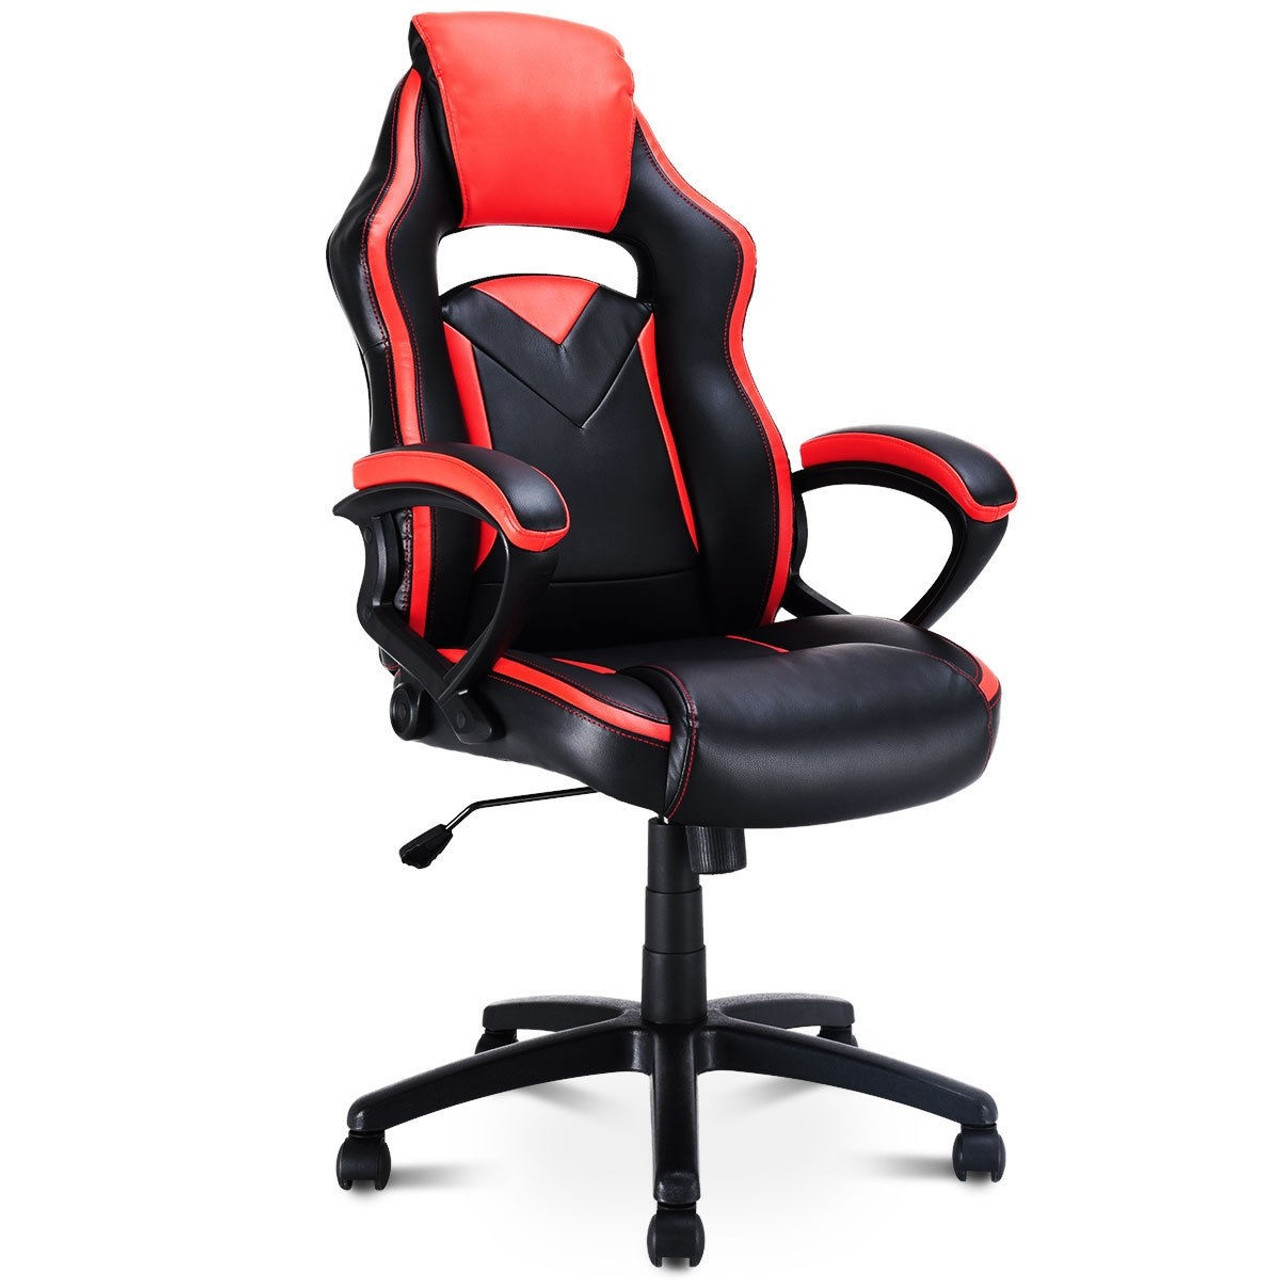 Pleasant 31 Lbs Racing Style Gaming Chair Swivel Office Chair Andrewgaddart Wooden Chair Designs For Living Room Andrewgaddartcom